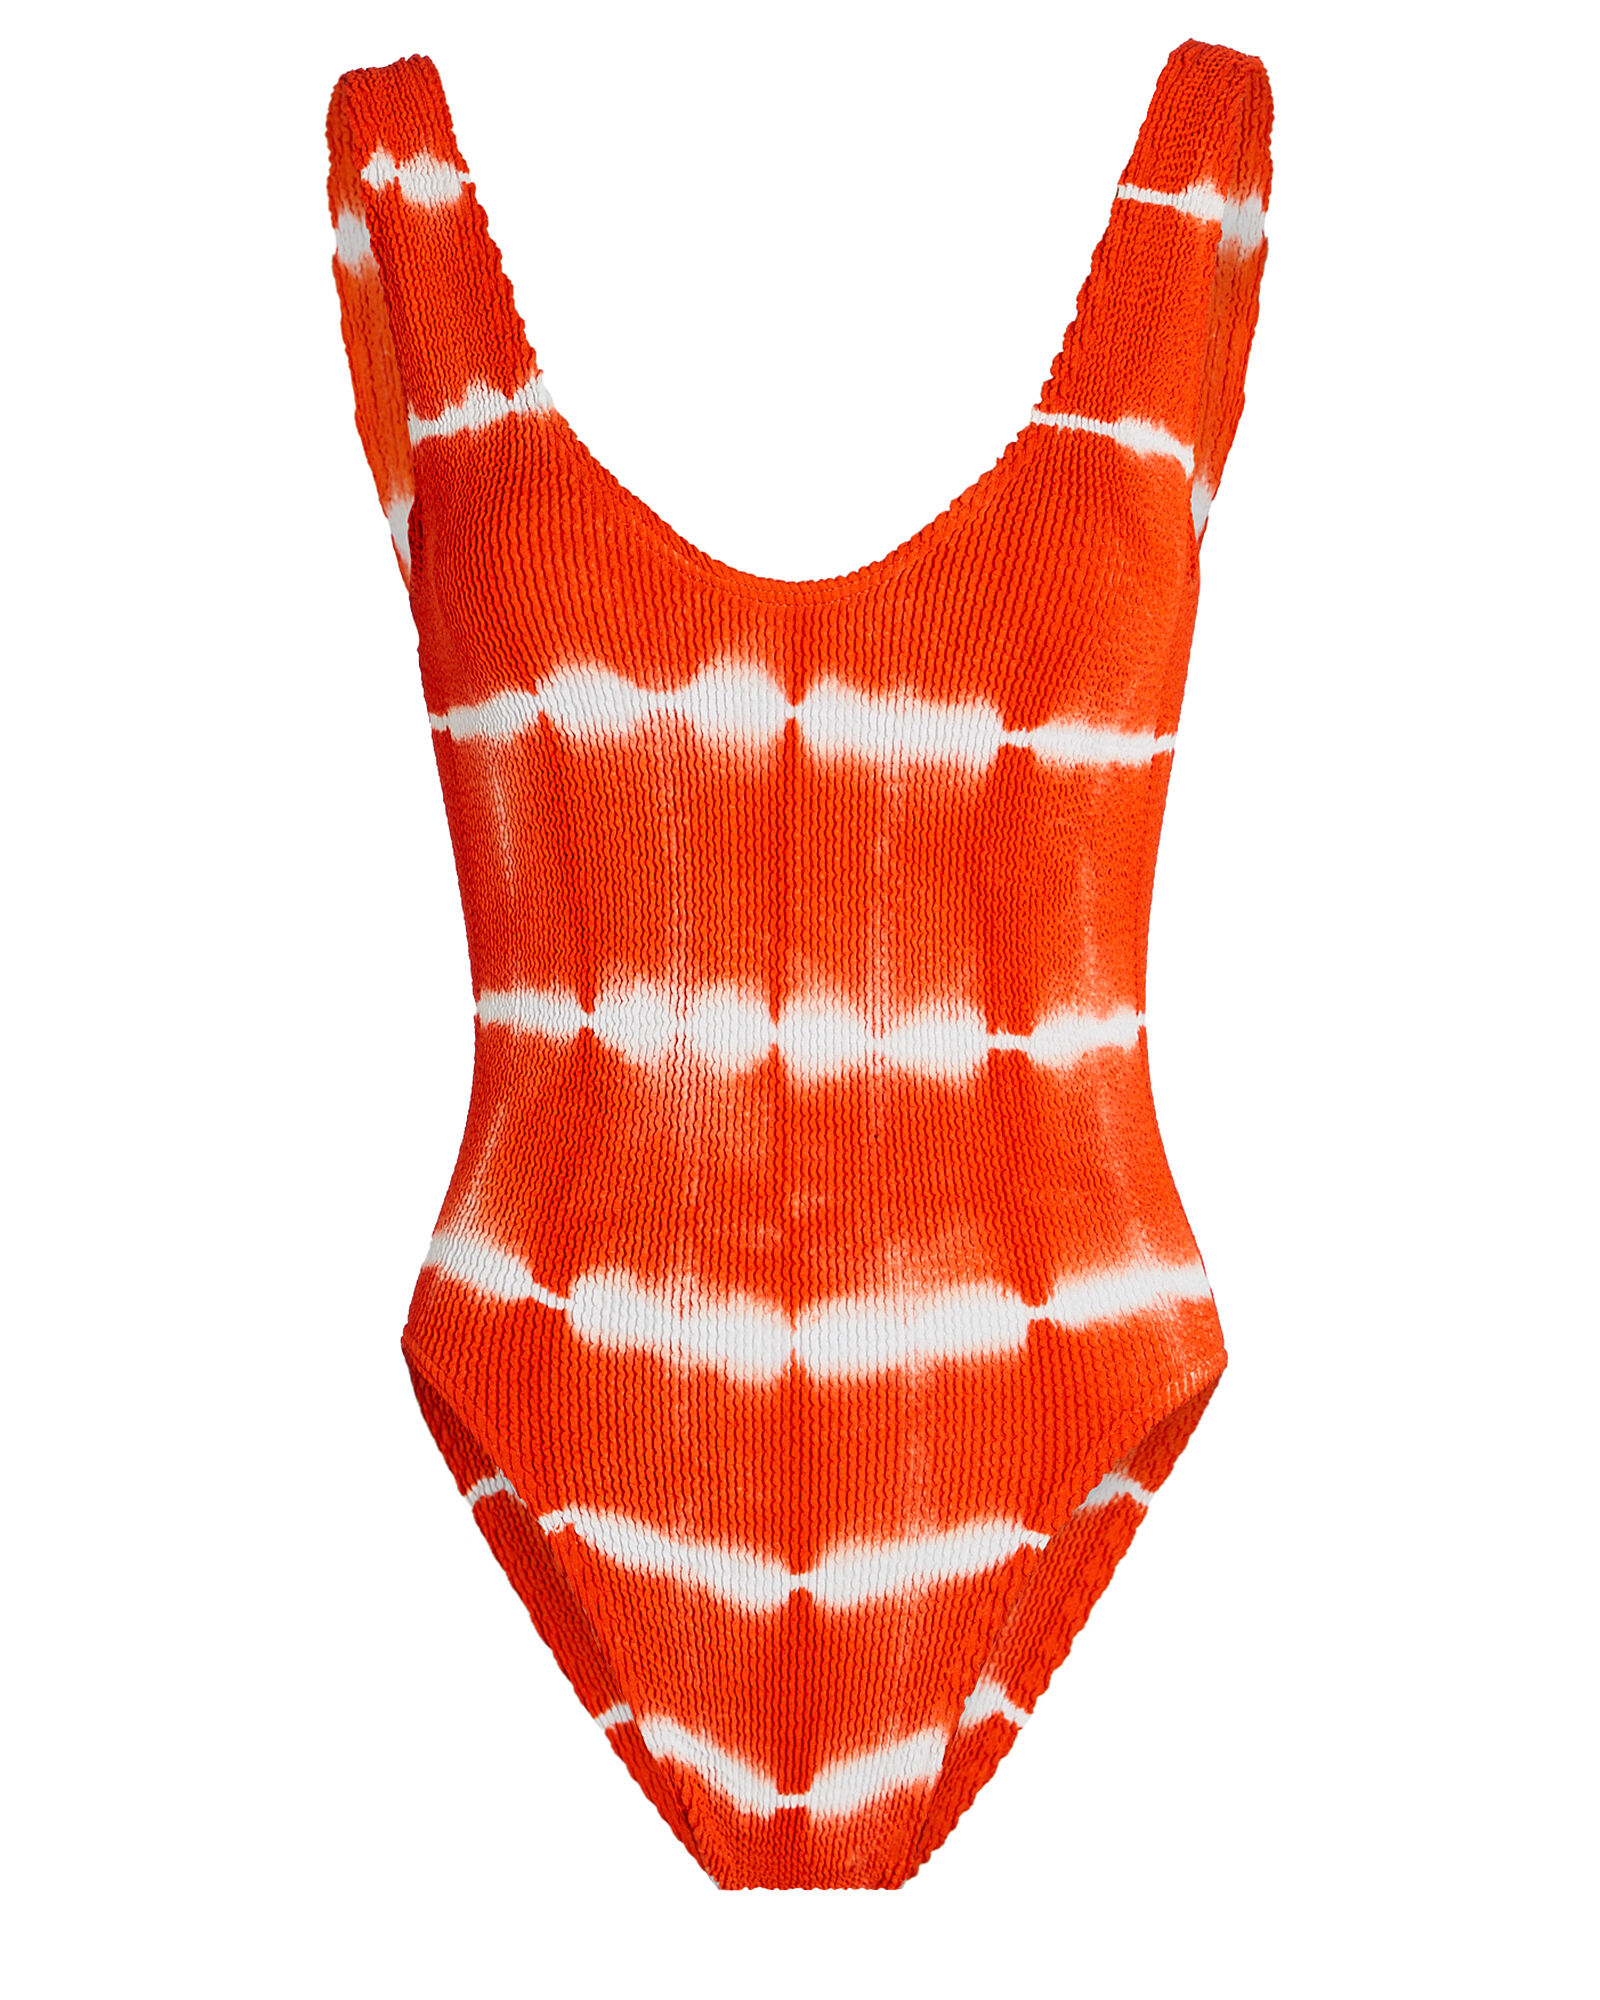 Mara One-Piece Tie-Dye Swimsuit, ORANGE, hi-res